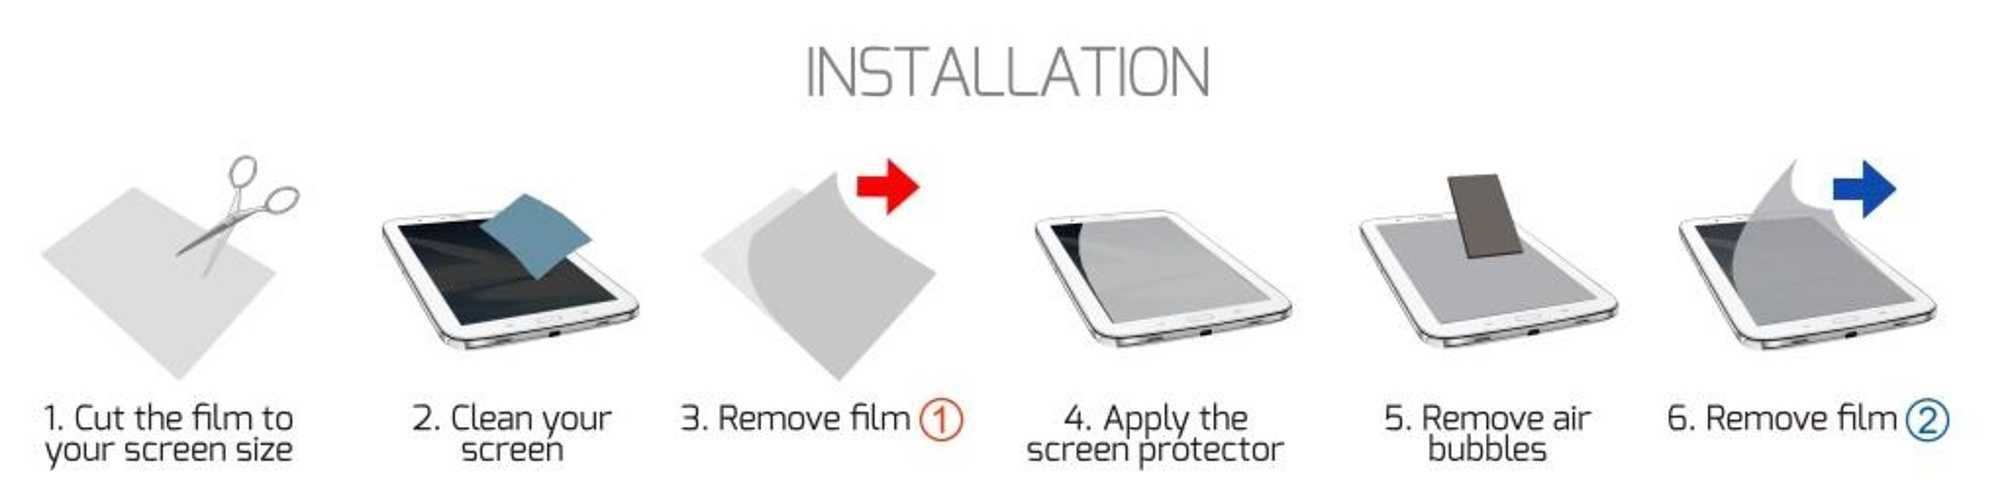 FILM DE PROTECTION ECRAN TABLETTE 7'''' UNIVERSEL 180641-180642-installation